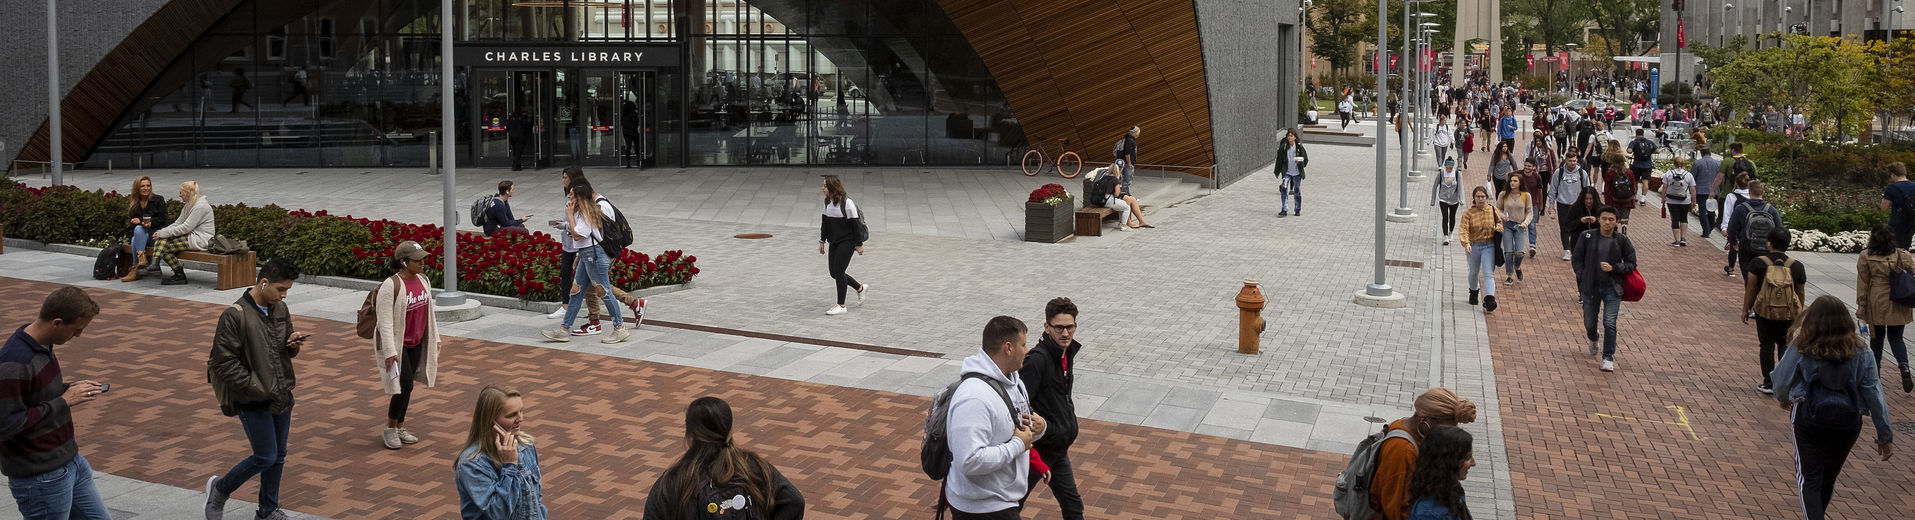 Students walk outside Charles Library on Main Campus